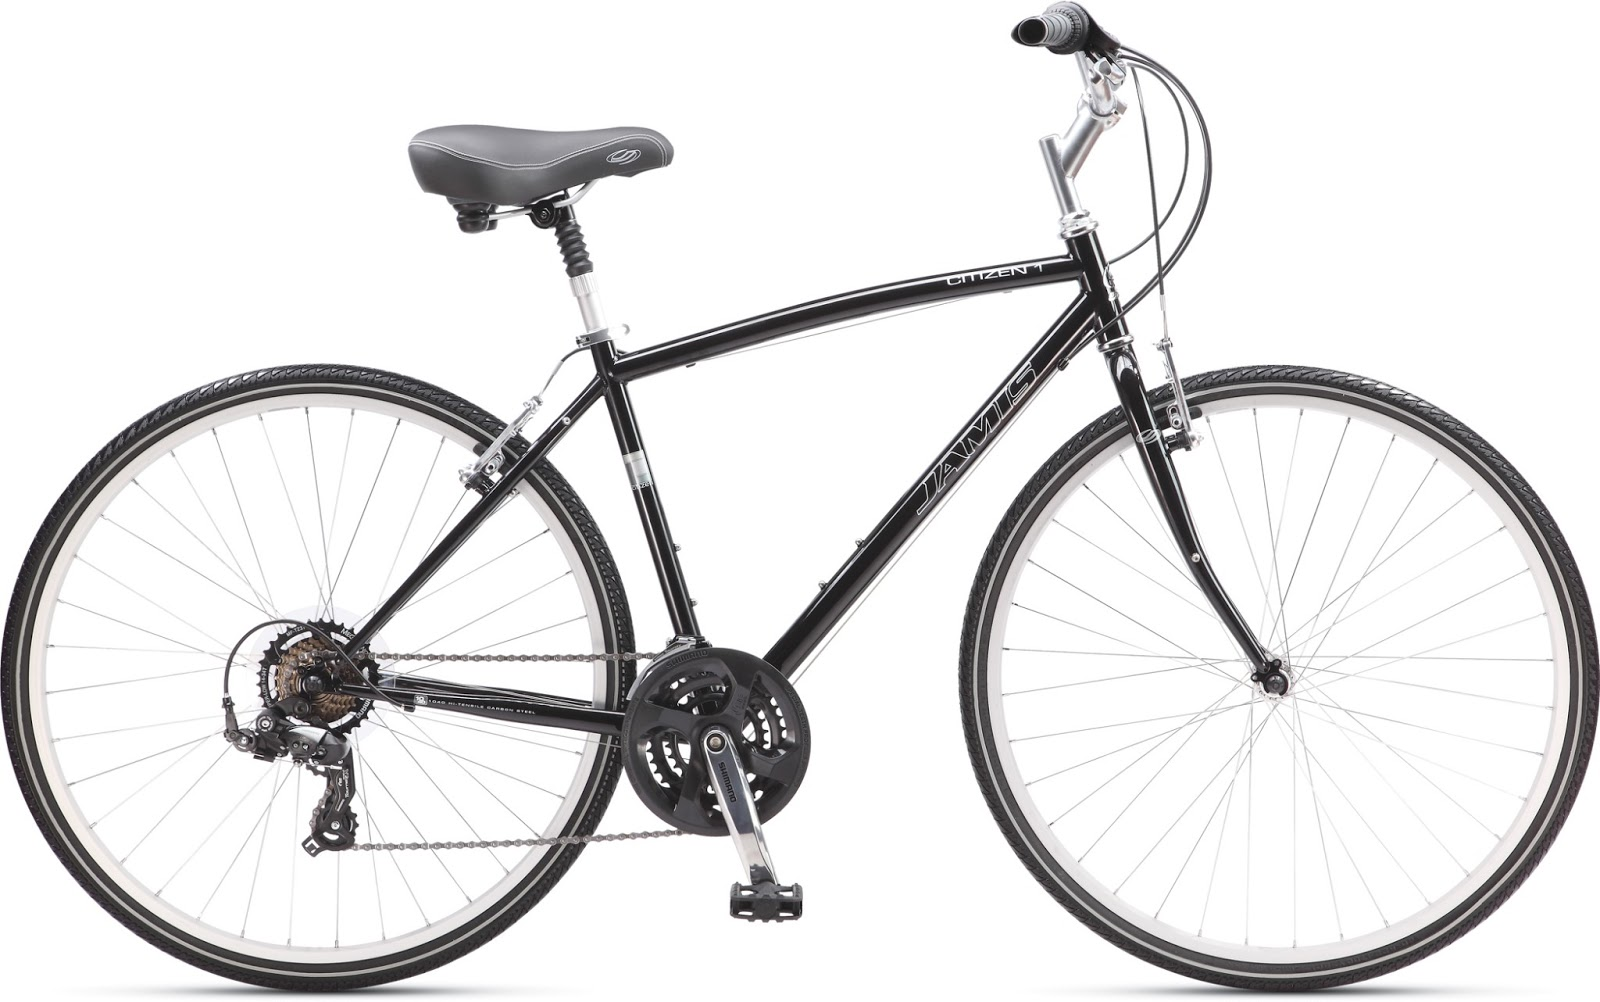 Bikes Citizen Hybrid Janis A basic hybrid bike from Jamis